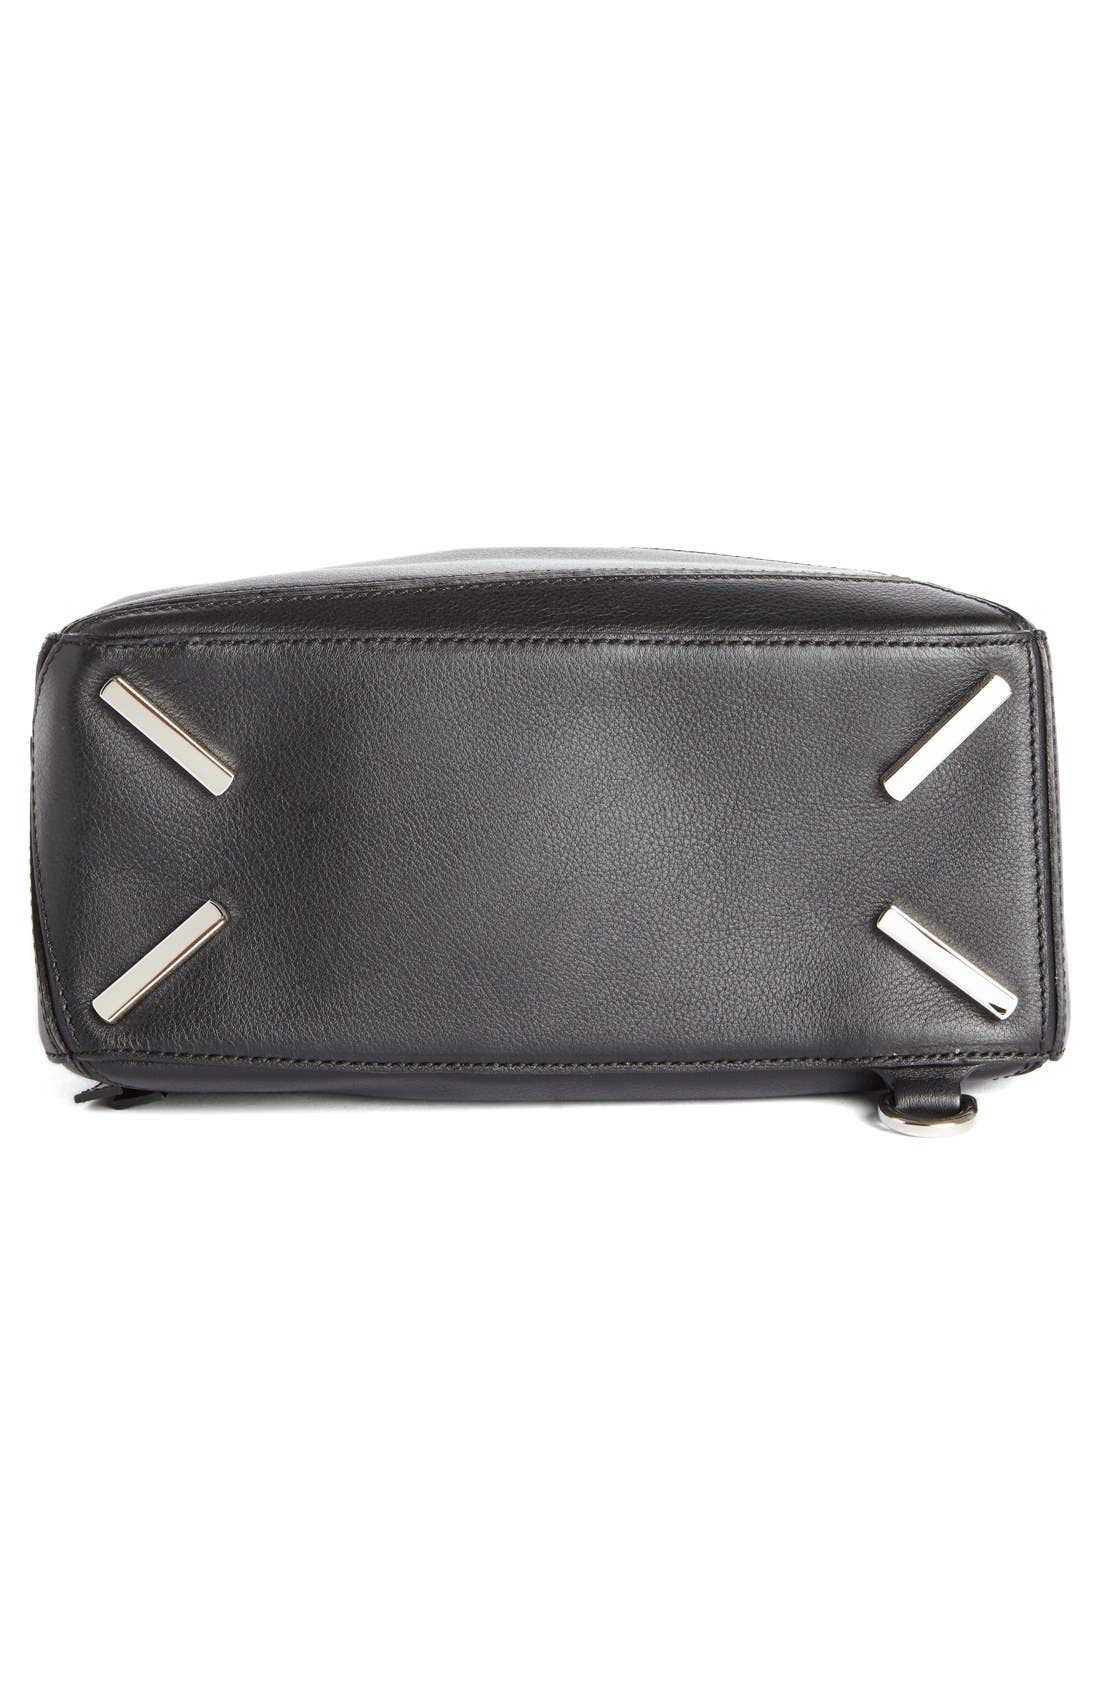 'Small Puzzle' Calfskin Leather Bag,                             Alternate thumbnail 4, color,                             001